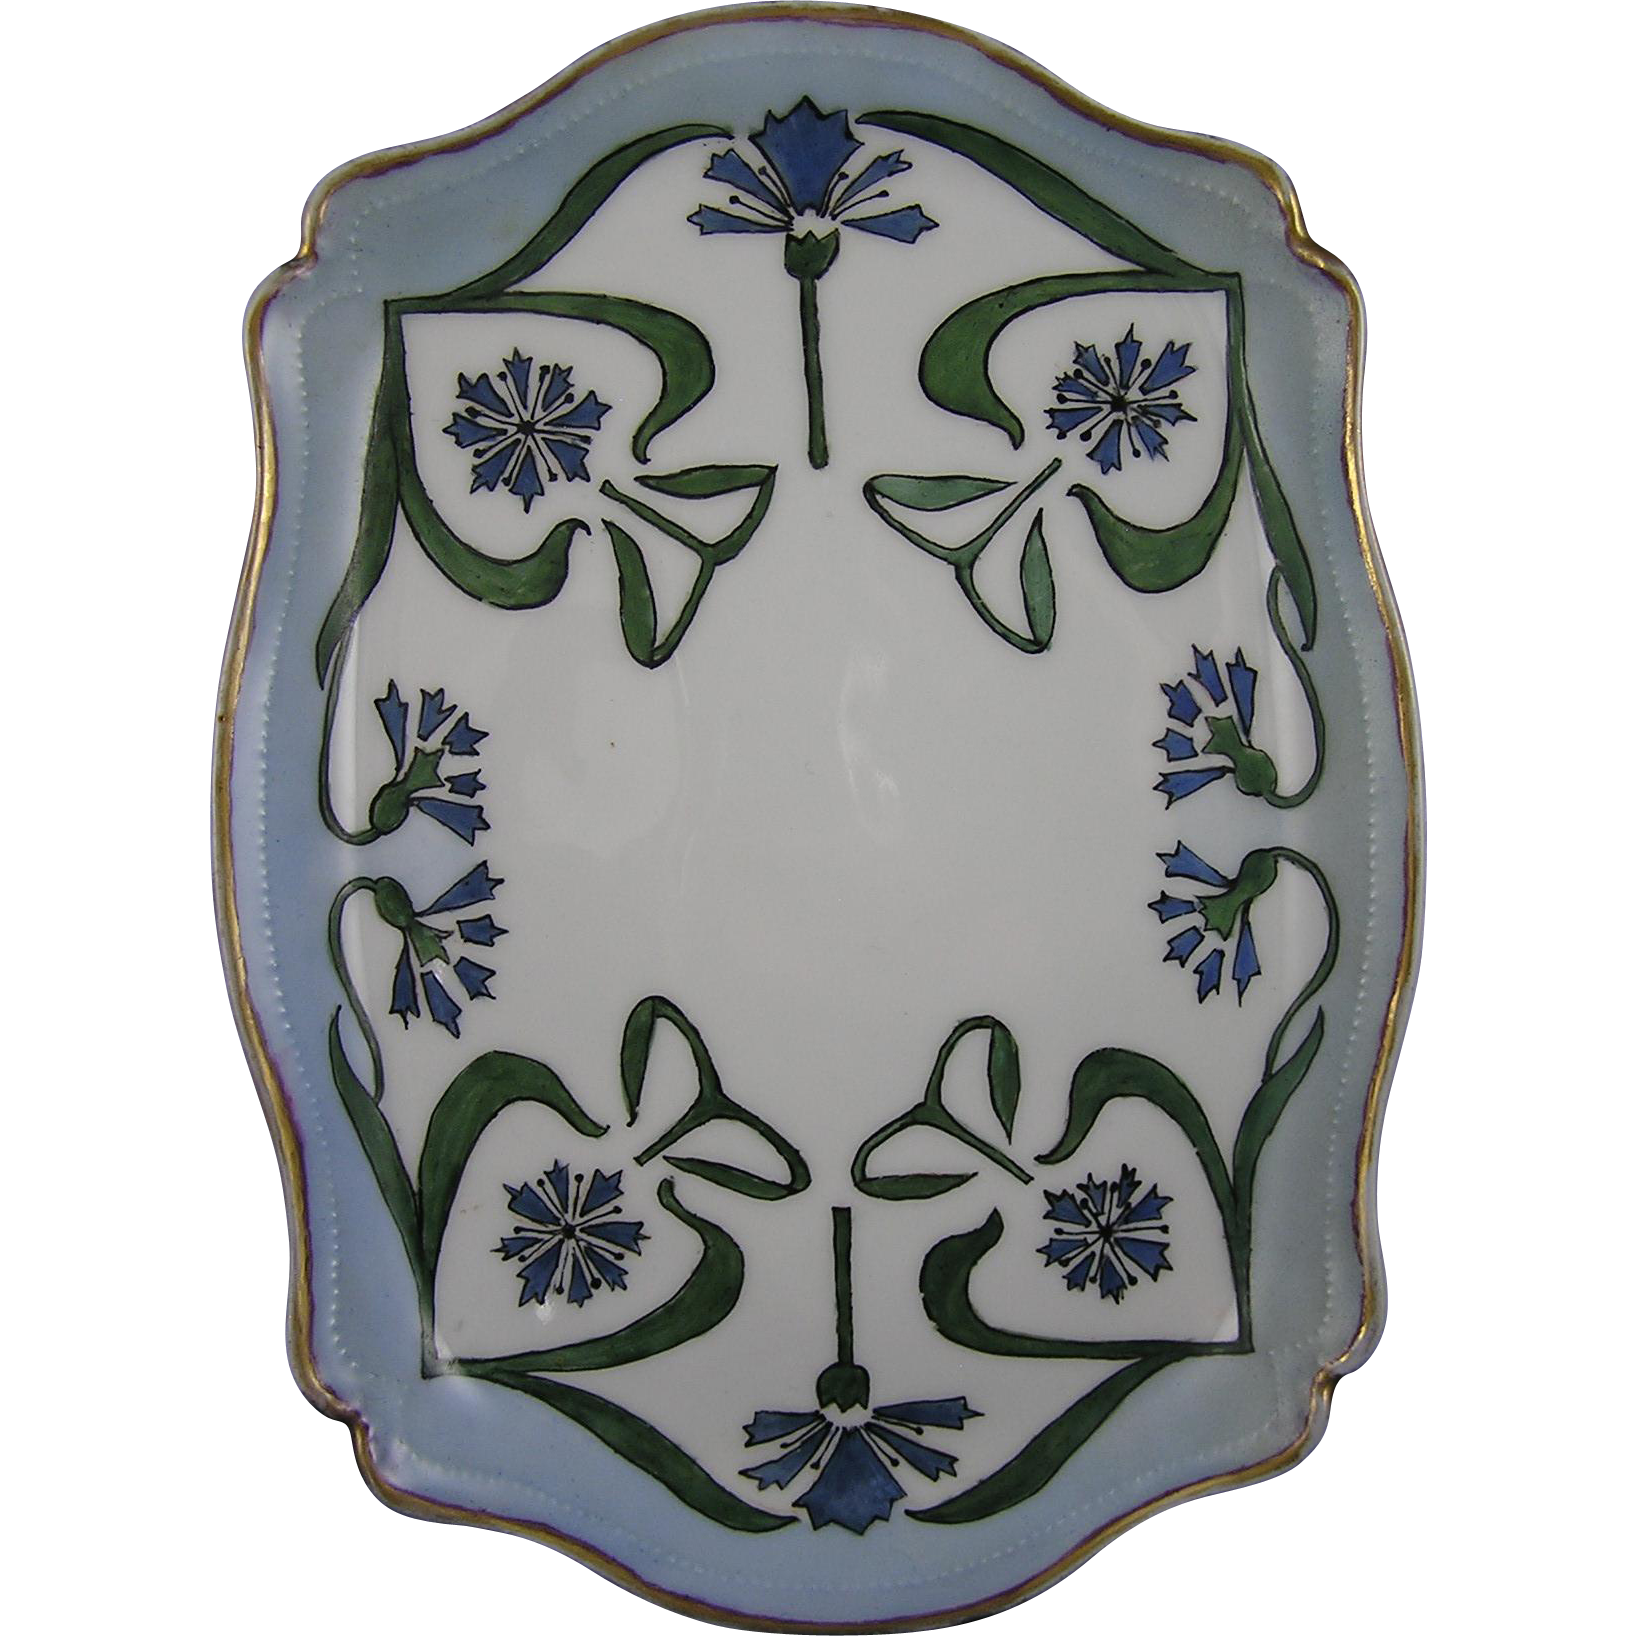 Tressemann & Vogt (T&V) Limoges Arts & Crafts Cornflower Design Tray (c.1908-1920) - Keramic Studio Design